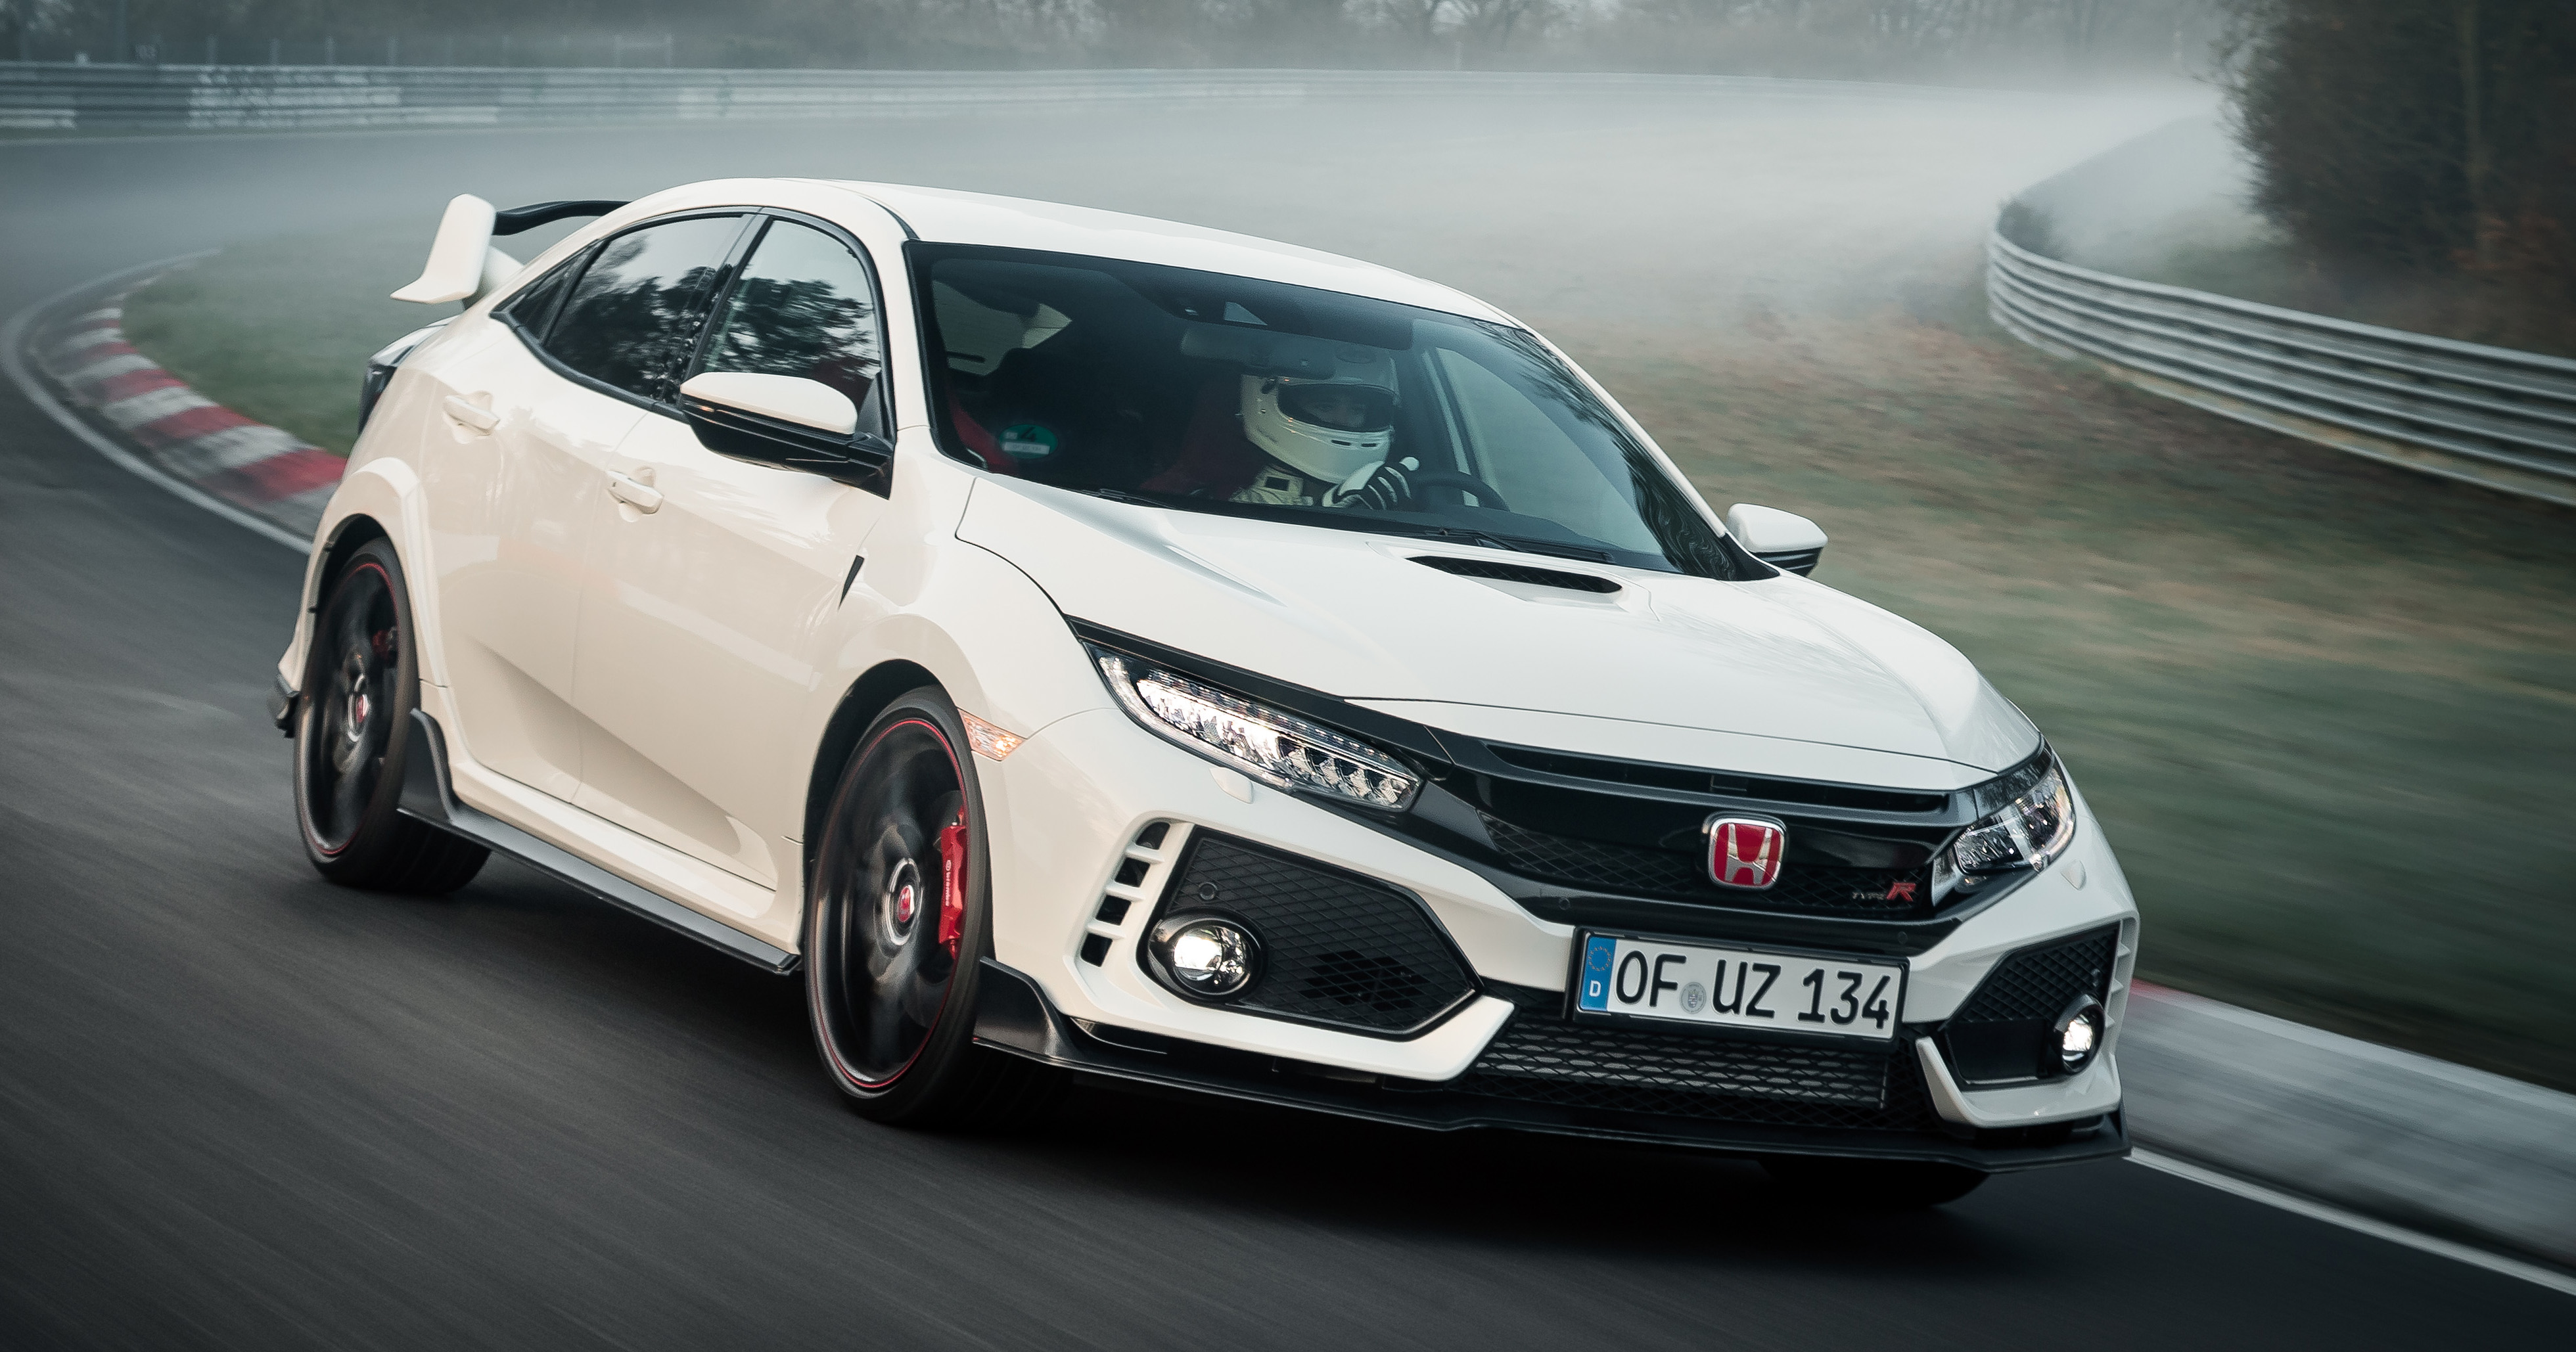 honda civic type r launched in the uk from rm174k. Black Bedroom Furniture Sets. Home Design Ideas